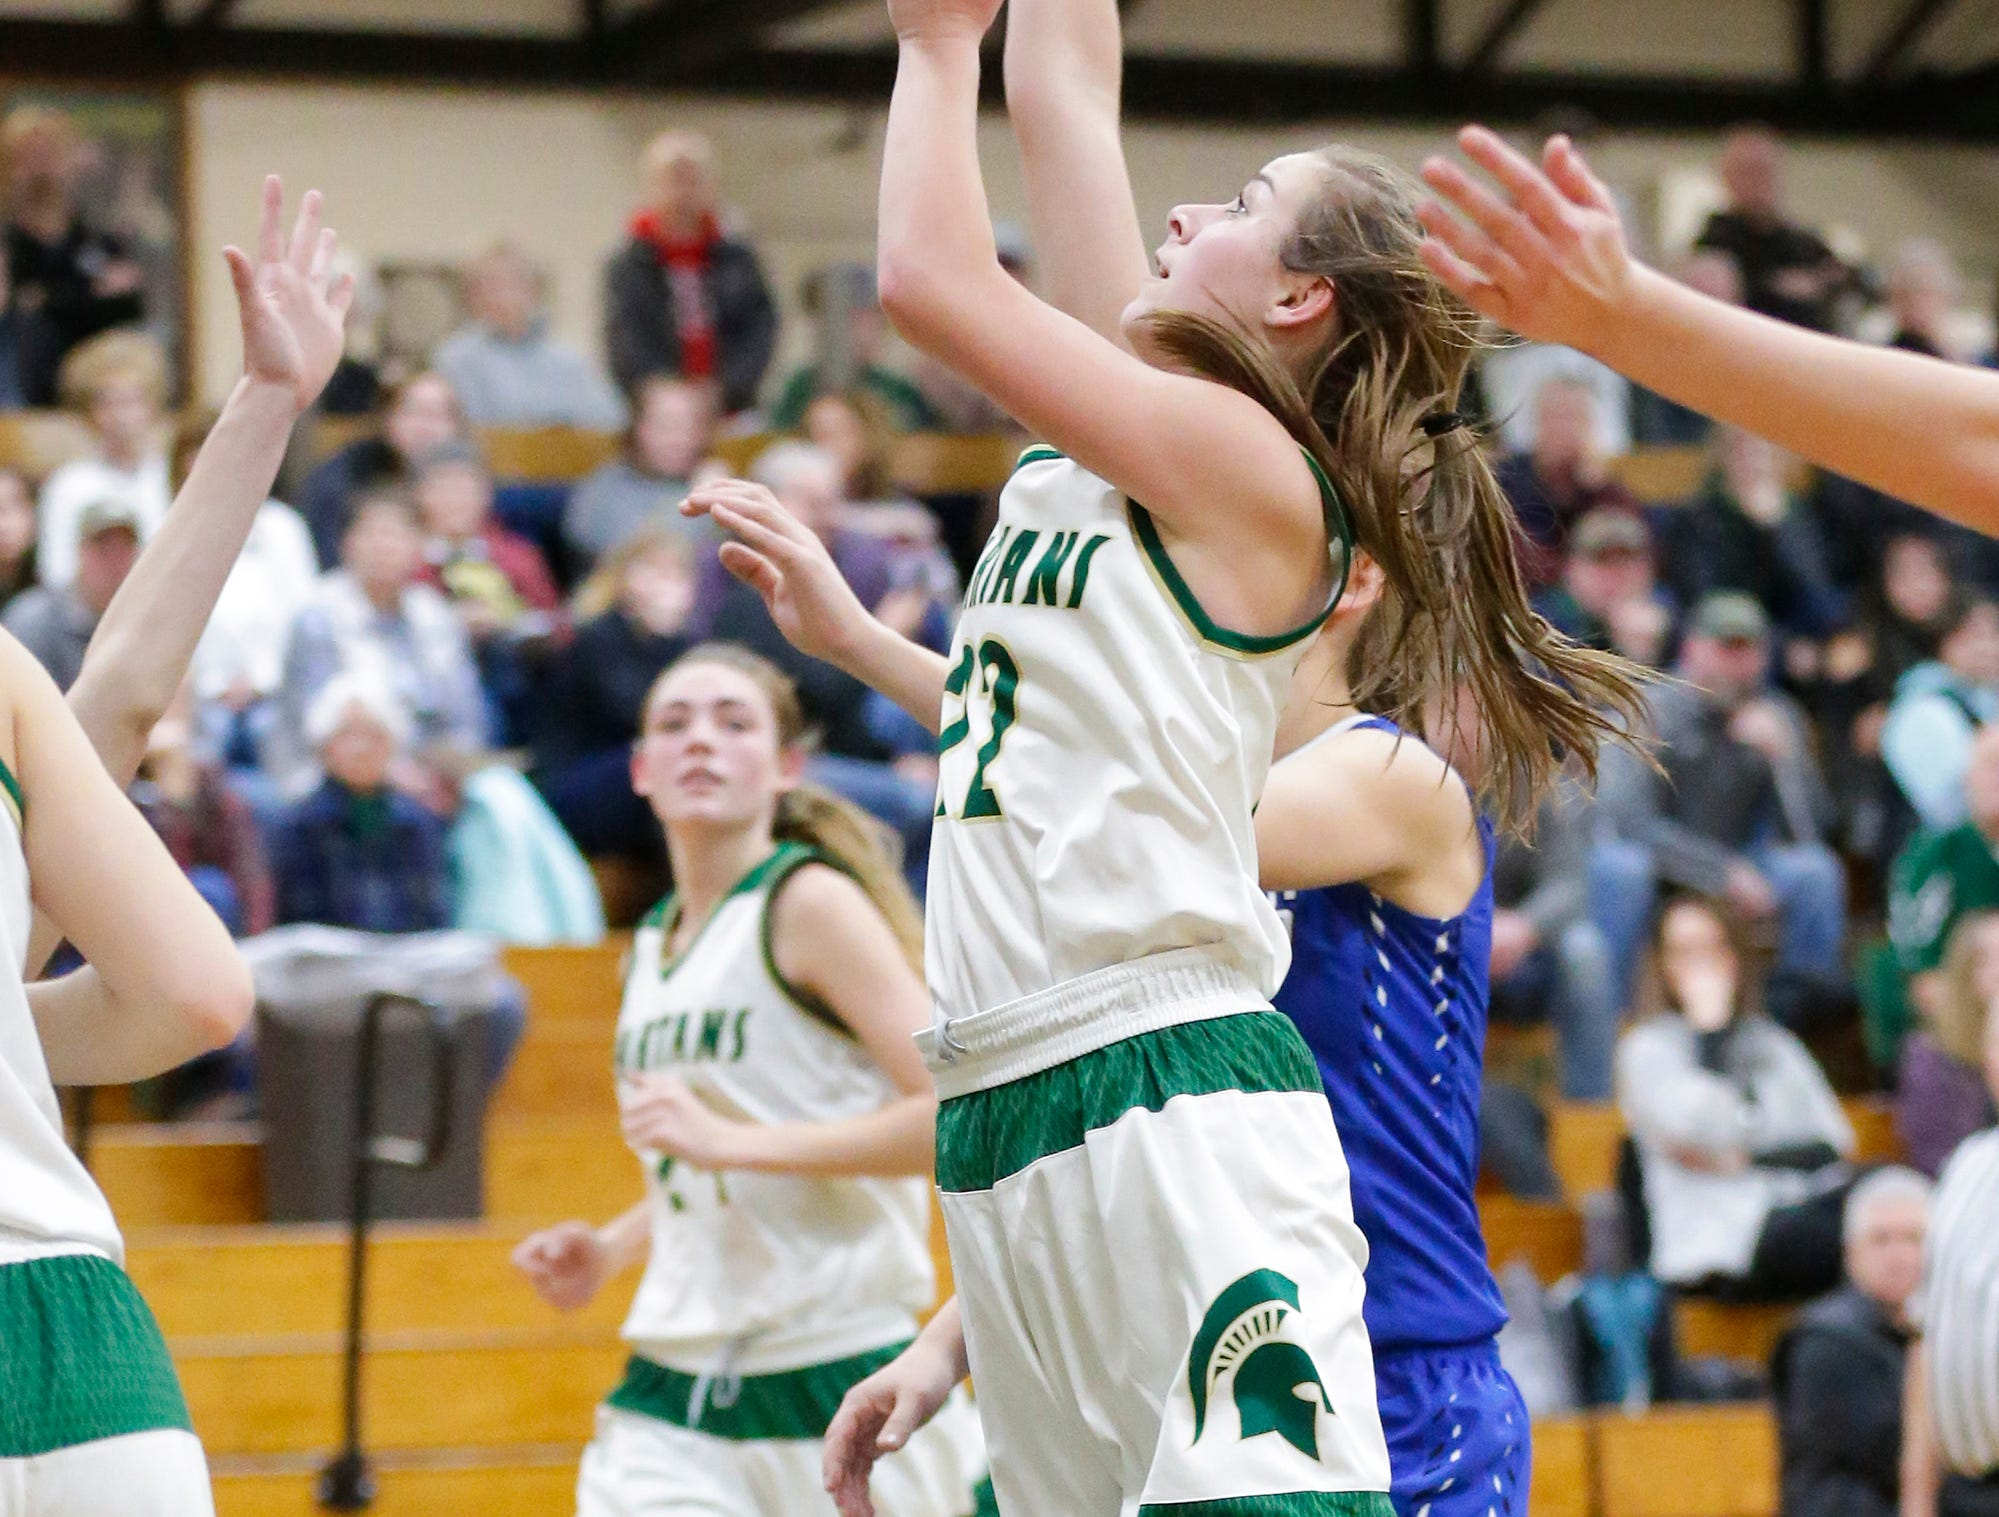 Laconia High School girls basketball's Haley Rens goes up for a basket against St. Mary's Springs Academy Tuesday, January 15, 2019 during their game in Rosendale. Laconia won the game 57-45. Doug Raflik/USA TODAY NETWORK-Wisconsin